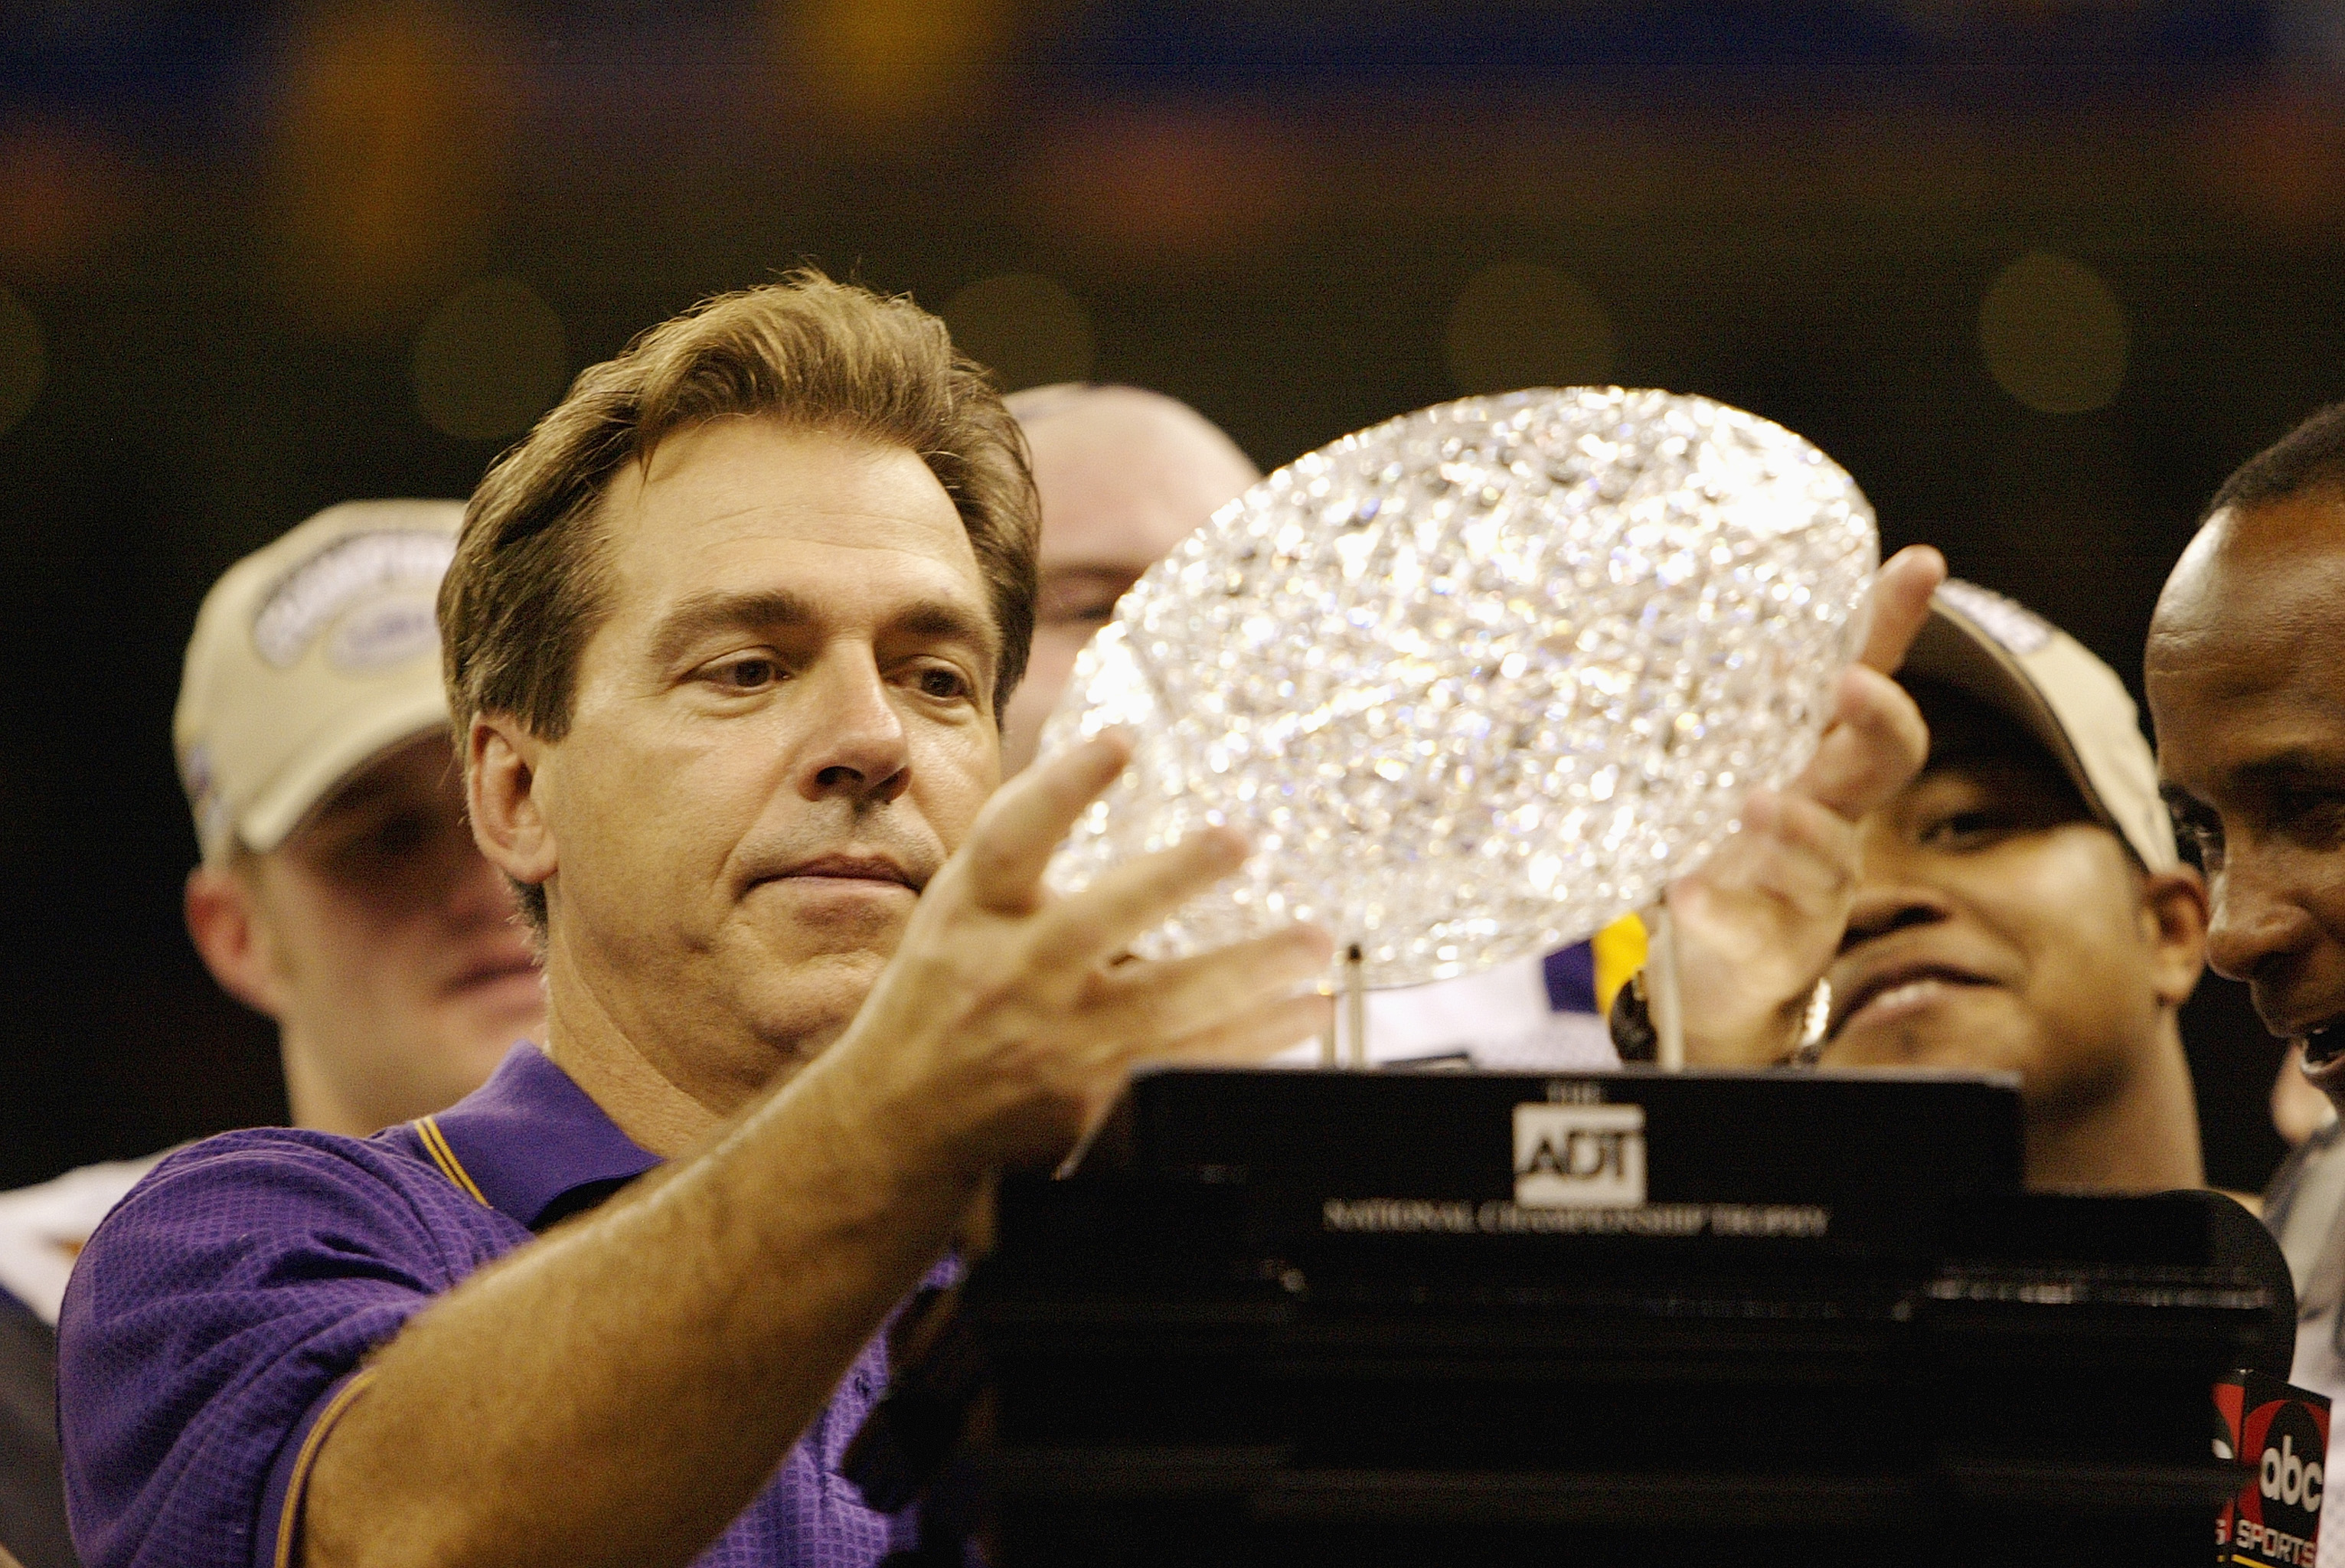 NEW ORLEANS - JANUARY 4:  Head coach Nick Saban of the Loiusiana State Tigers holds up the Bowl Championship Series Trophy after his team defeated the Oklahoma Sooners in the Nokia Sugar Bowl National Championship on January 4, 2004 at the Louisiana Super